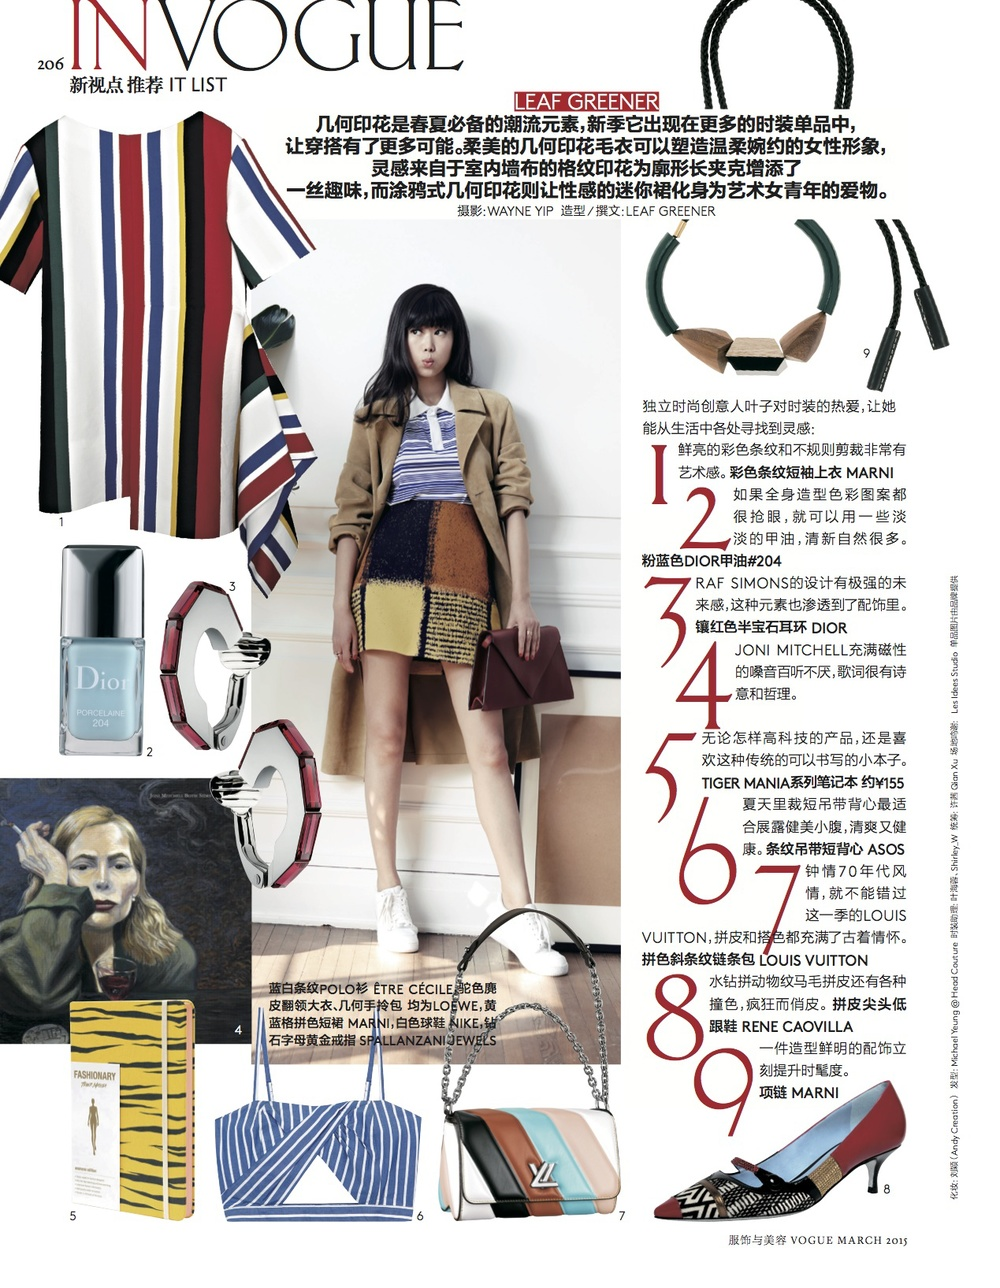 Leaf Greener loves Etre Cecile's classic striped polo t shirt in her new style column for Vogue China, check it out in their March issue!